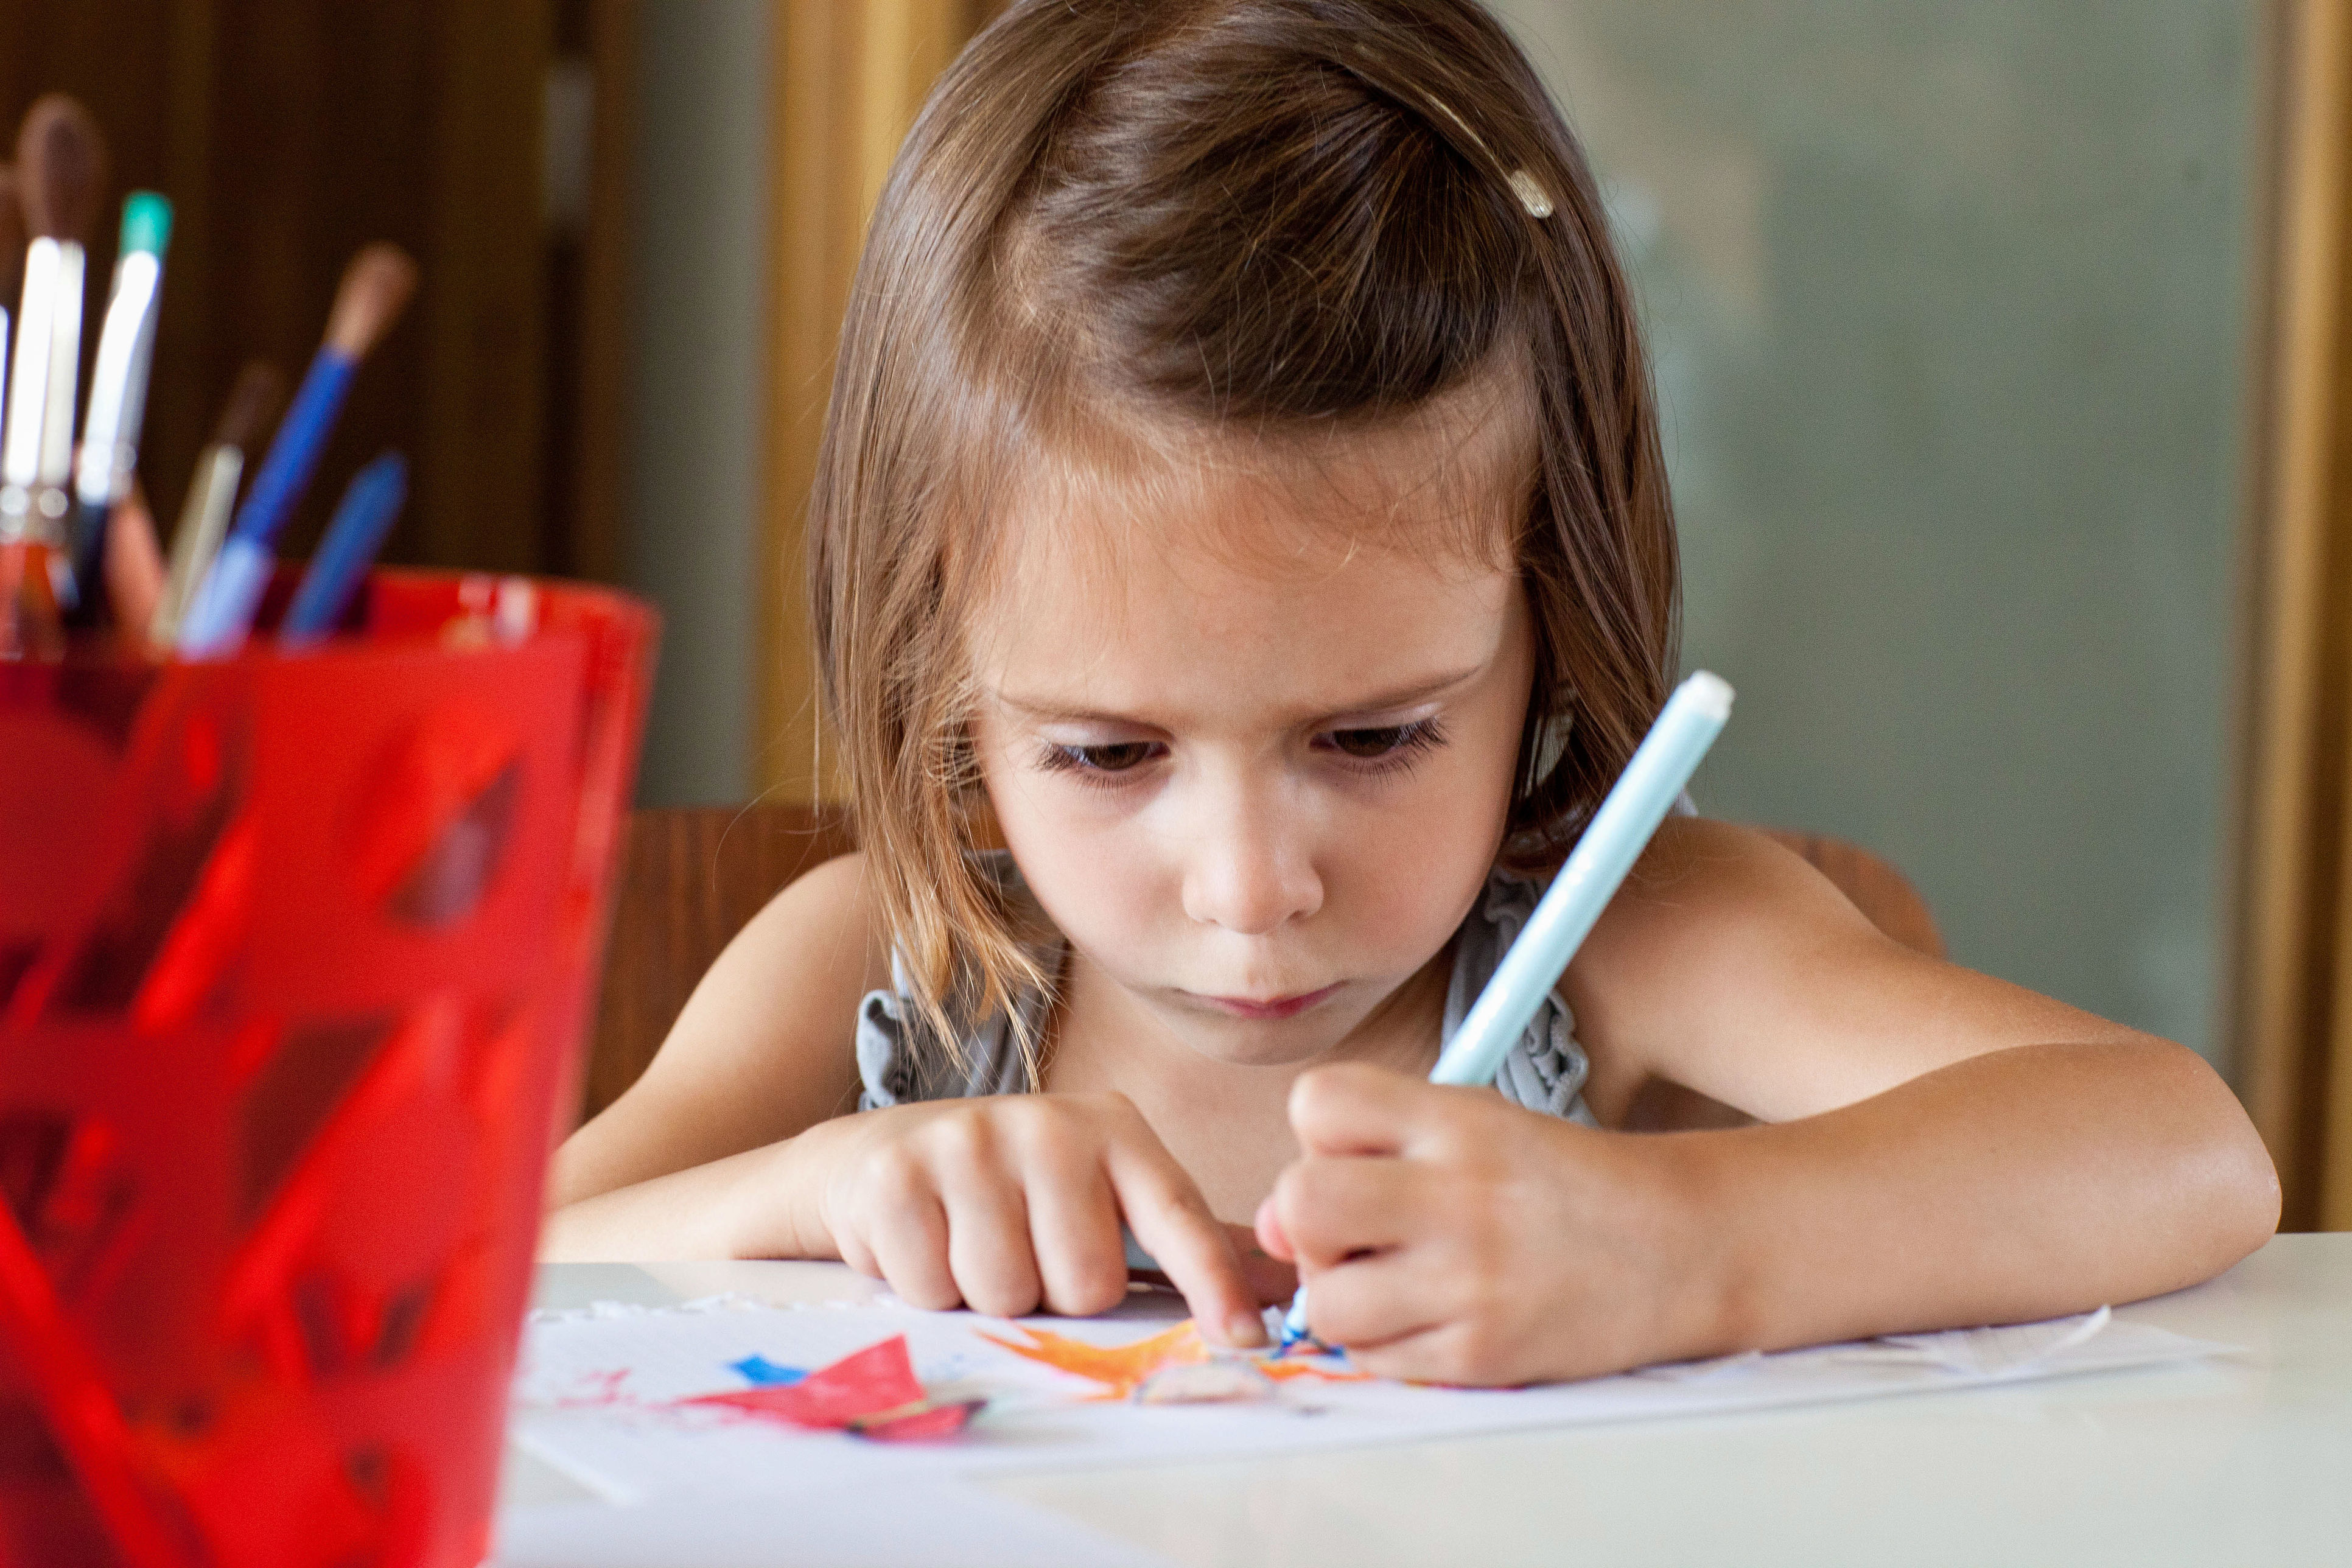 Scientists Have an Interesting Theory on Why Some People Are Left-Handed